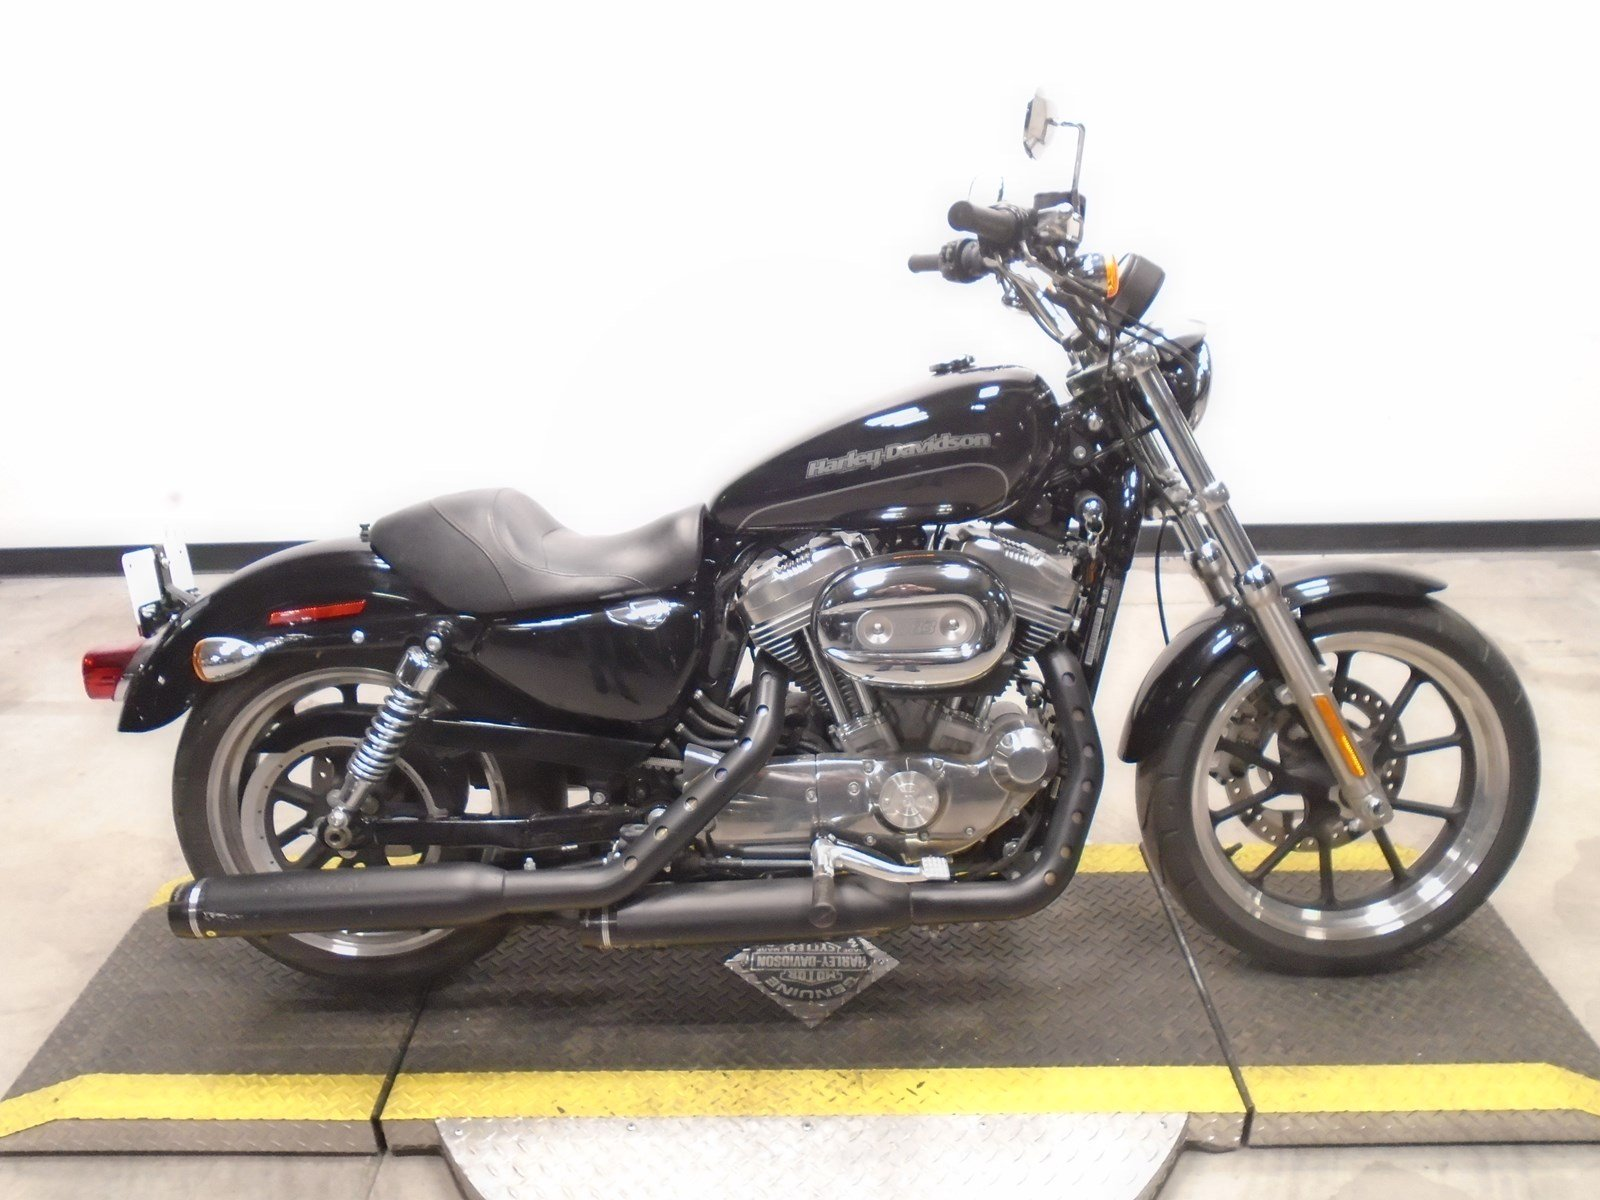 Pre-Owned 2015 Harley-Davidson Sportster 883 Superlow XL883L